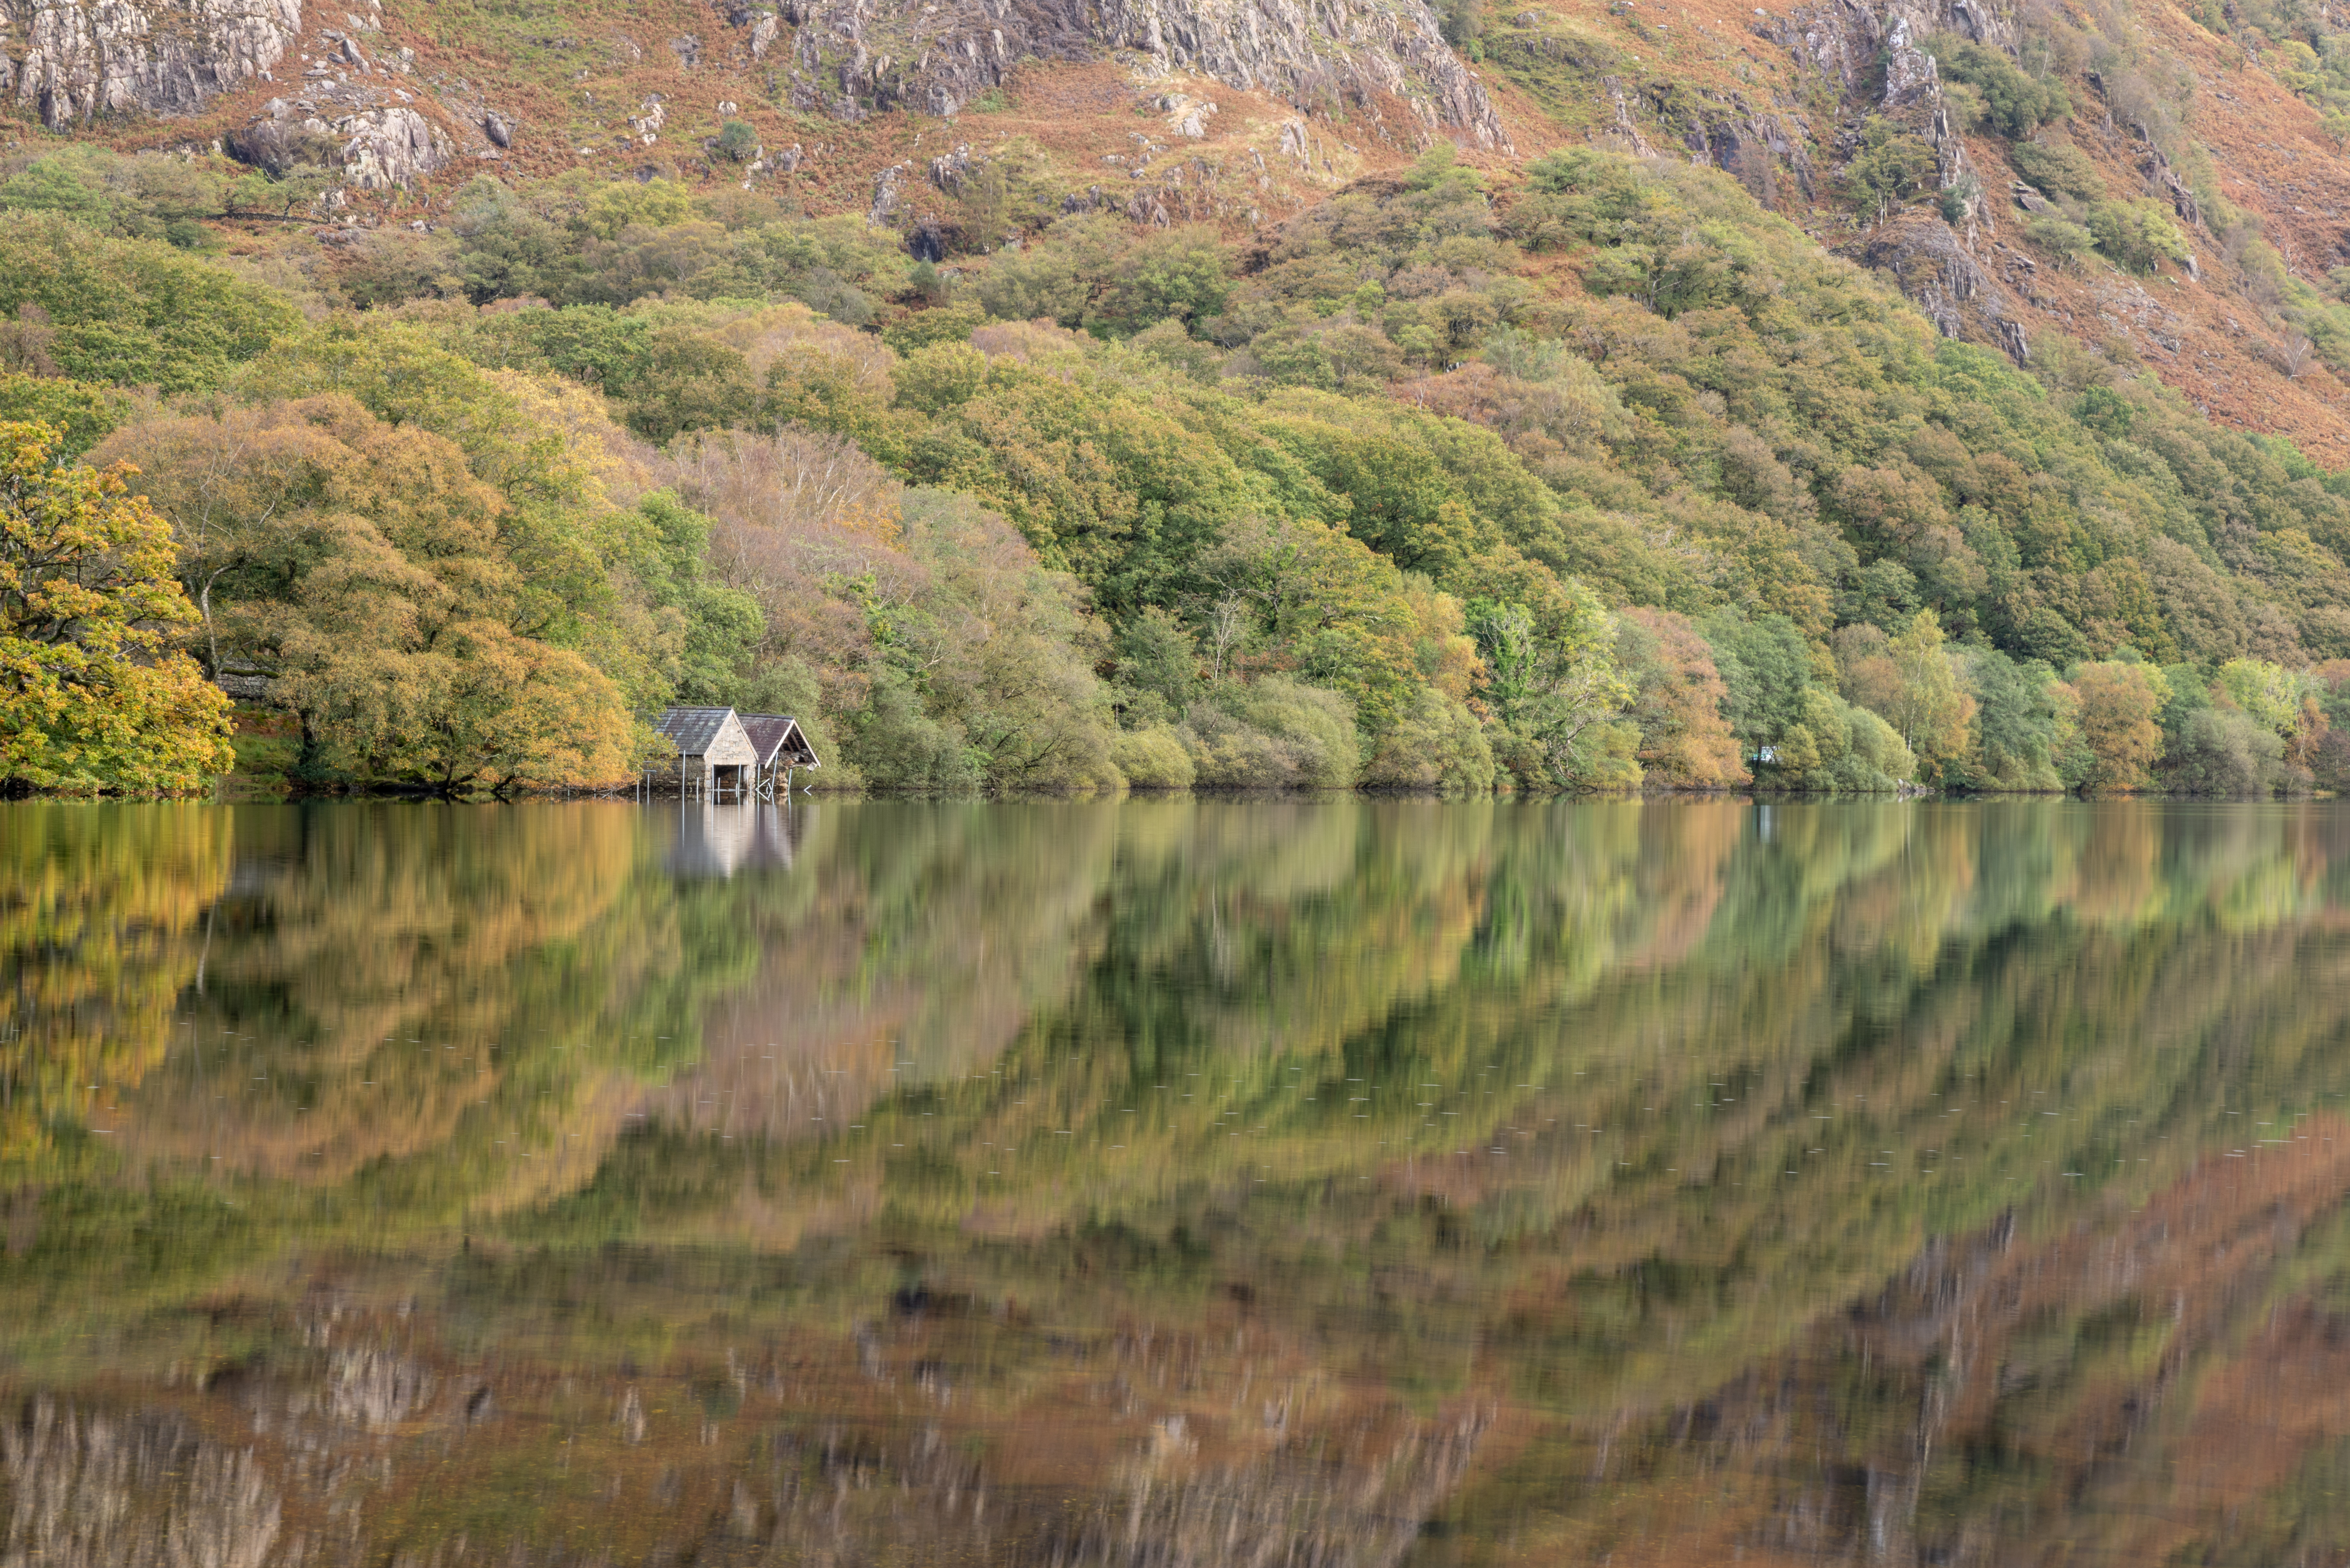 Two boatsheds on the Southern shore of Llyn Dinas, Snowdonia. The image shows the trees and some   hills behind reflected in the lake. The trees display some early Autumn colour.